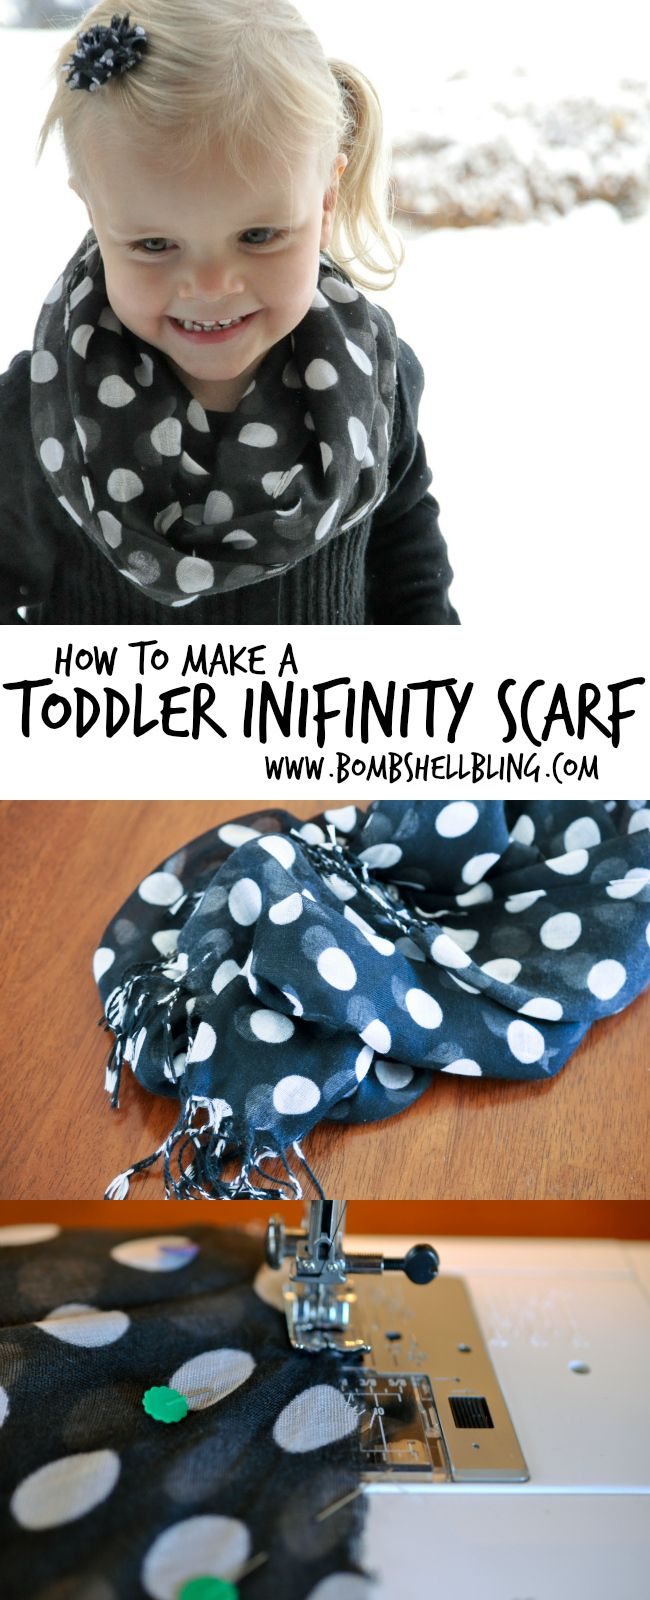 How to Sew a Toddler Infinity Scarf in Five Minutes!  LOVE THIS!